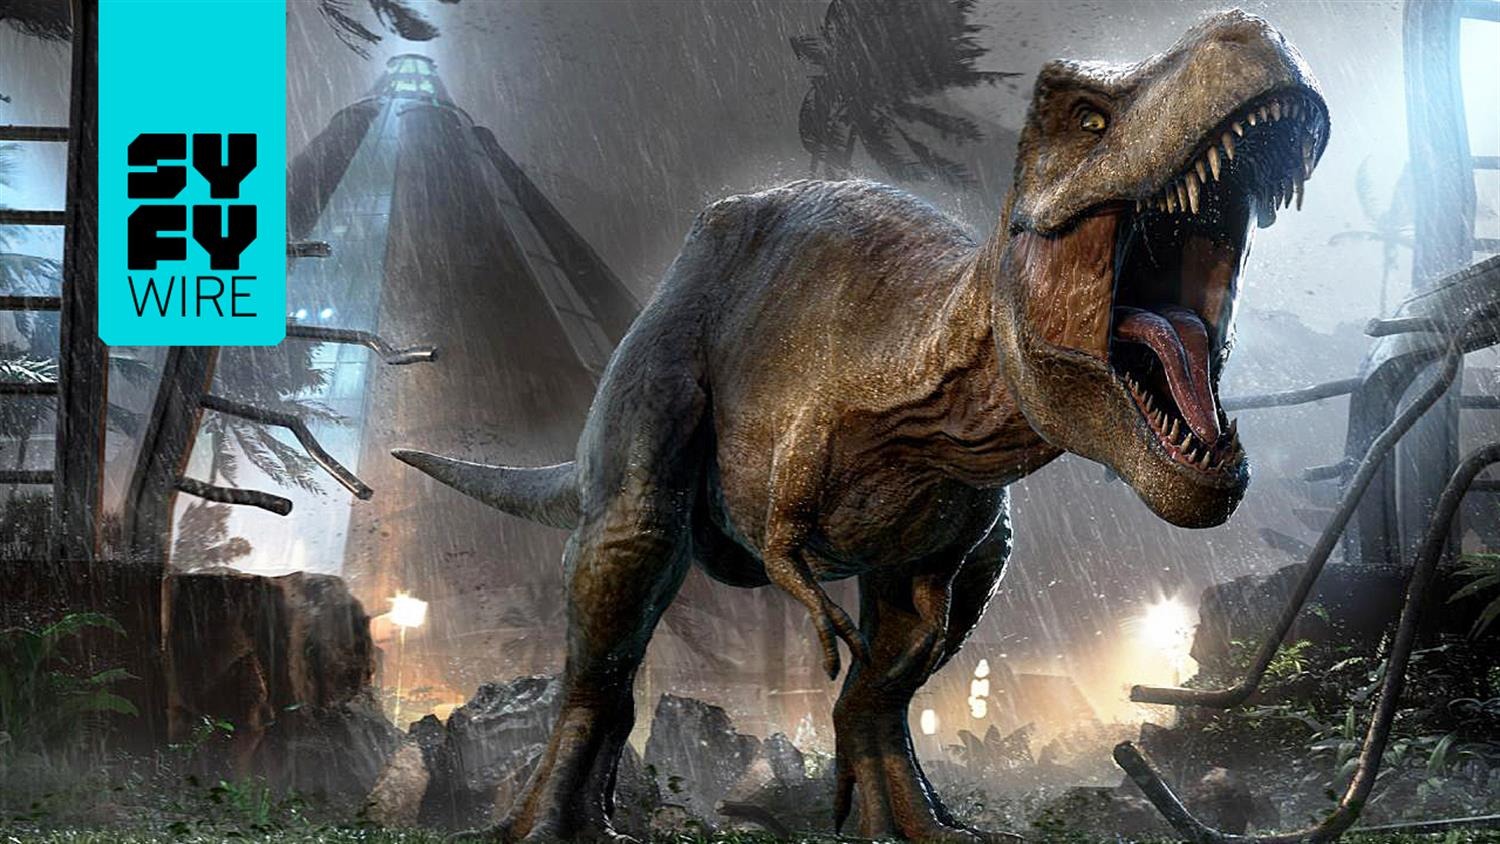 What Colors Were Dinosaurs And Can They See Them (Science Behind the Fiction)